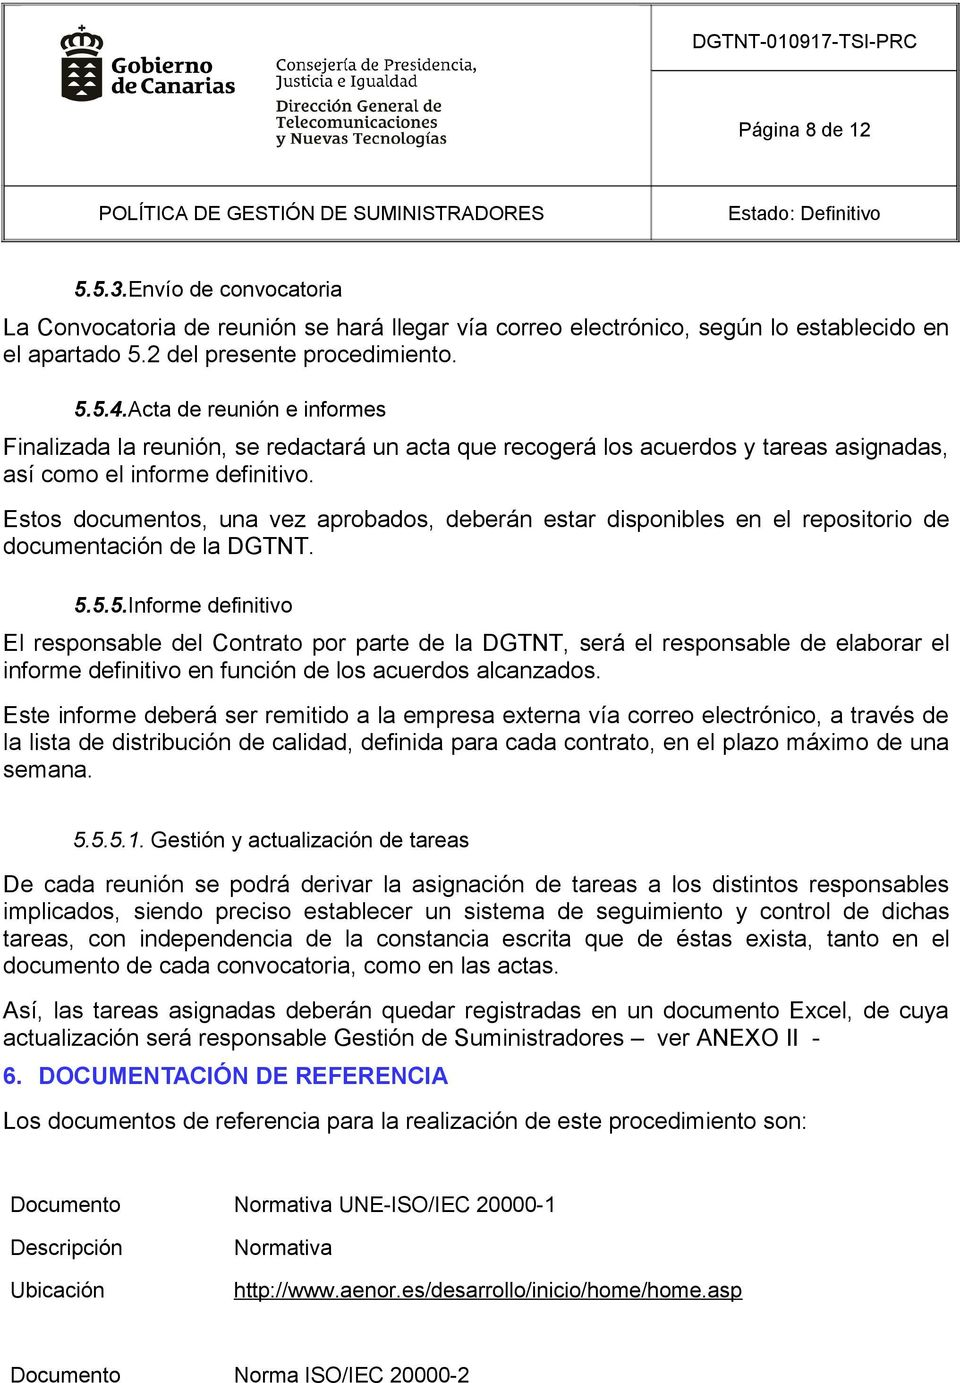 Estos documentos, una vez aprobados, deberán estar disponibles en el repositorio de documentación de la DGTNT. 5.